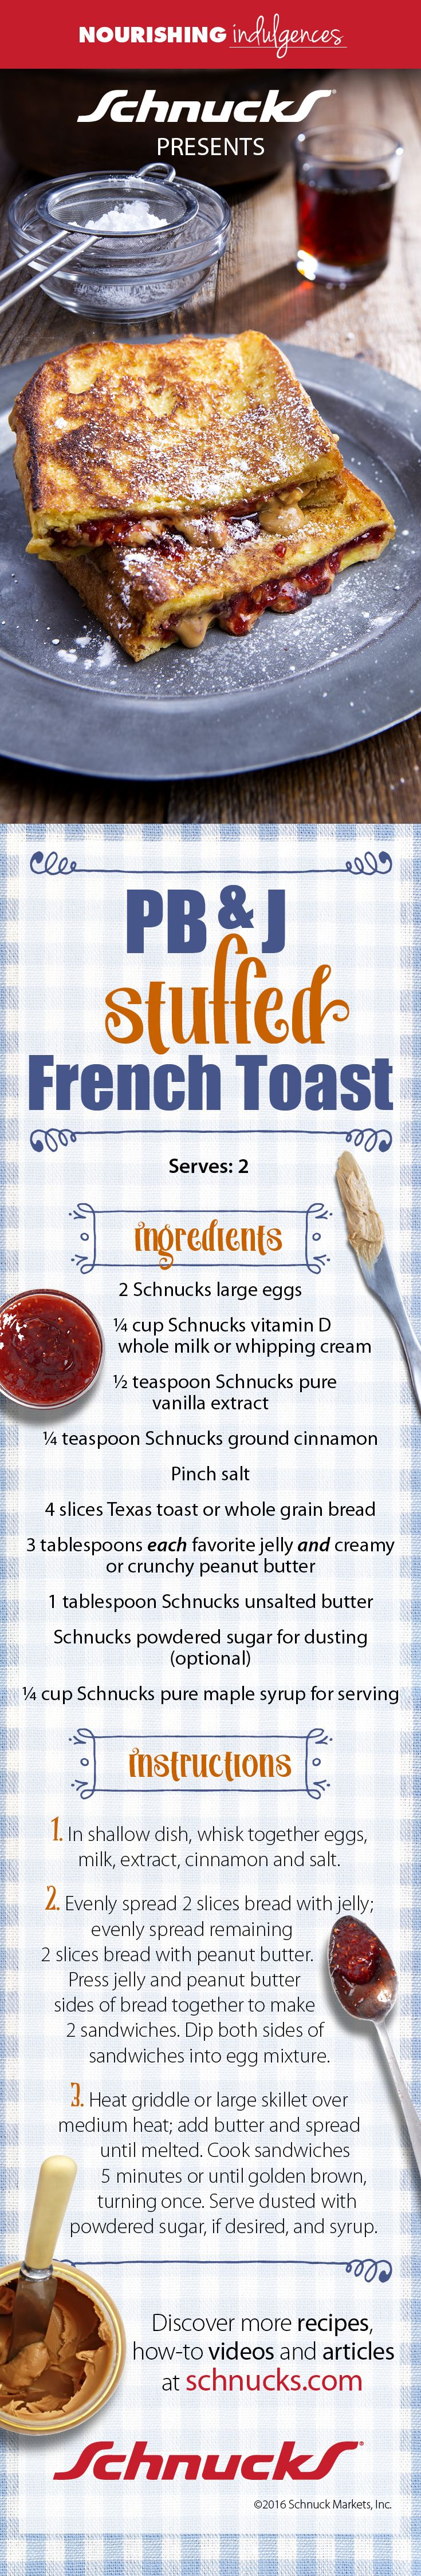 If you LOVE french toast and PB&J sandwiches, then PB&J Stuffed French…